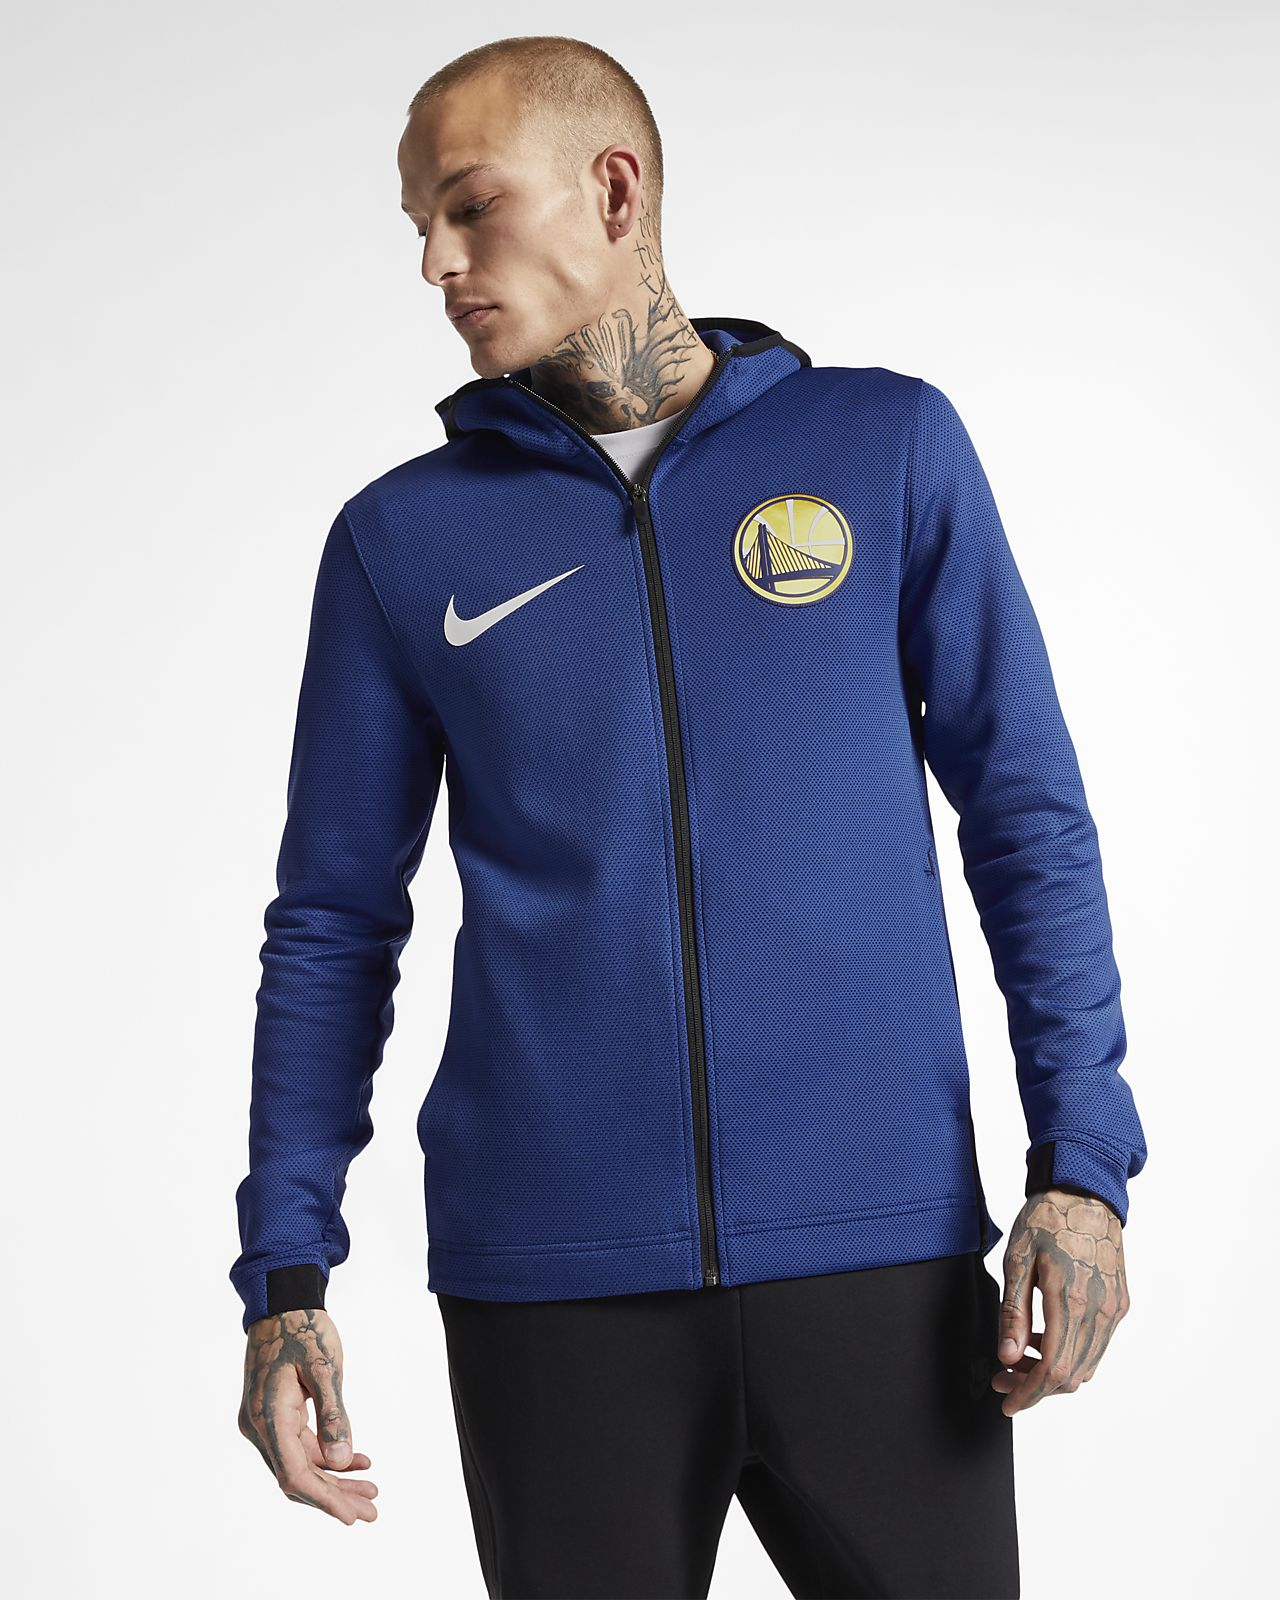 c539407f5973b9 ... Golden State Warriors Nike Therma Flex Showtime Men's NBA Hoodie